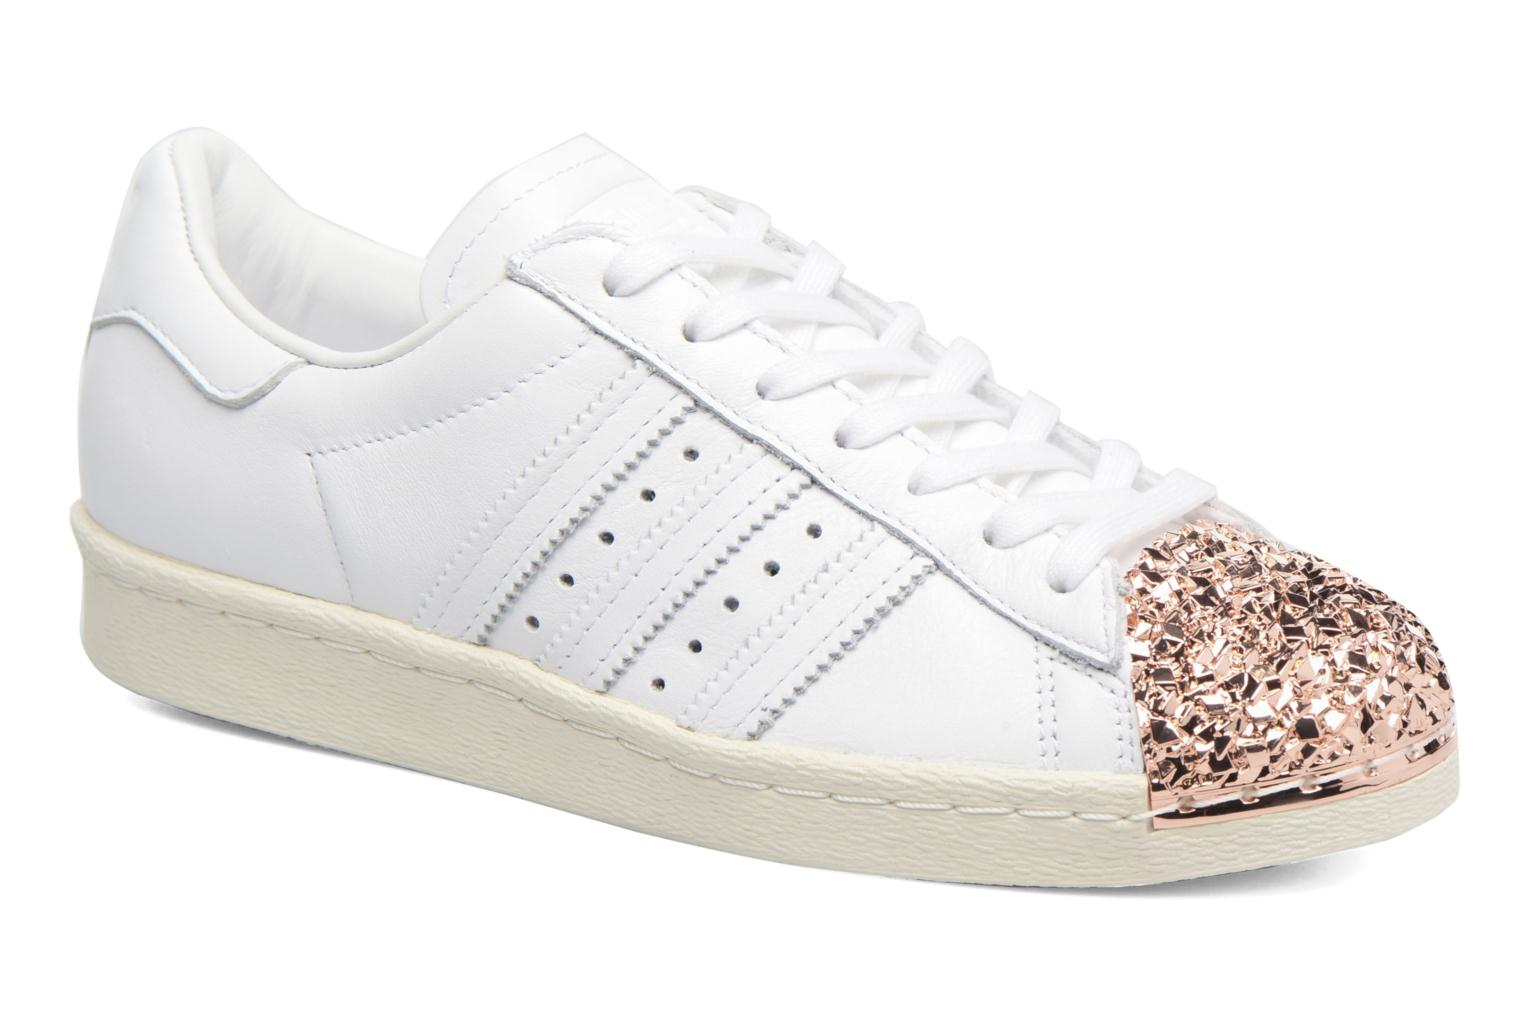 buy popular 416d5 fced1 Zapatos promocionales Adidas Originals Superstar 80S 3D Mt W (Blanco) -  Deportivas Cómodo y